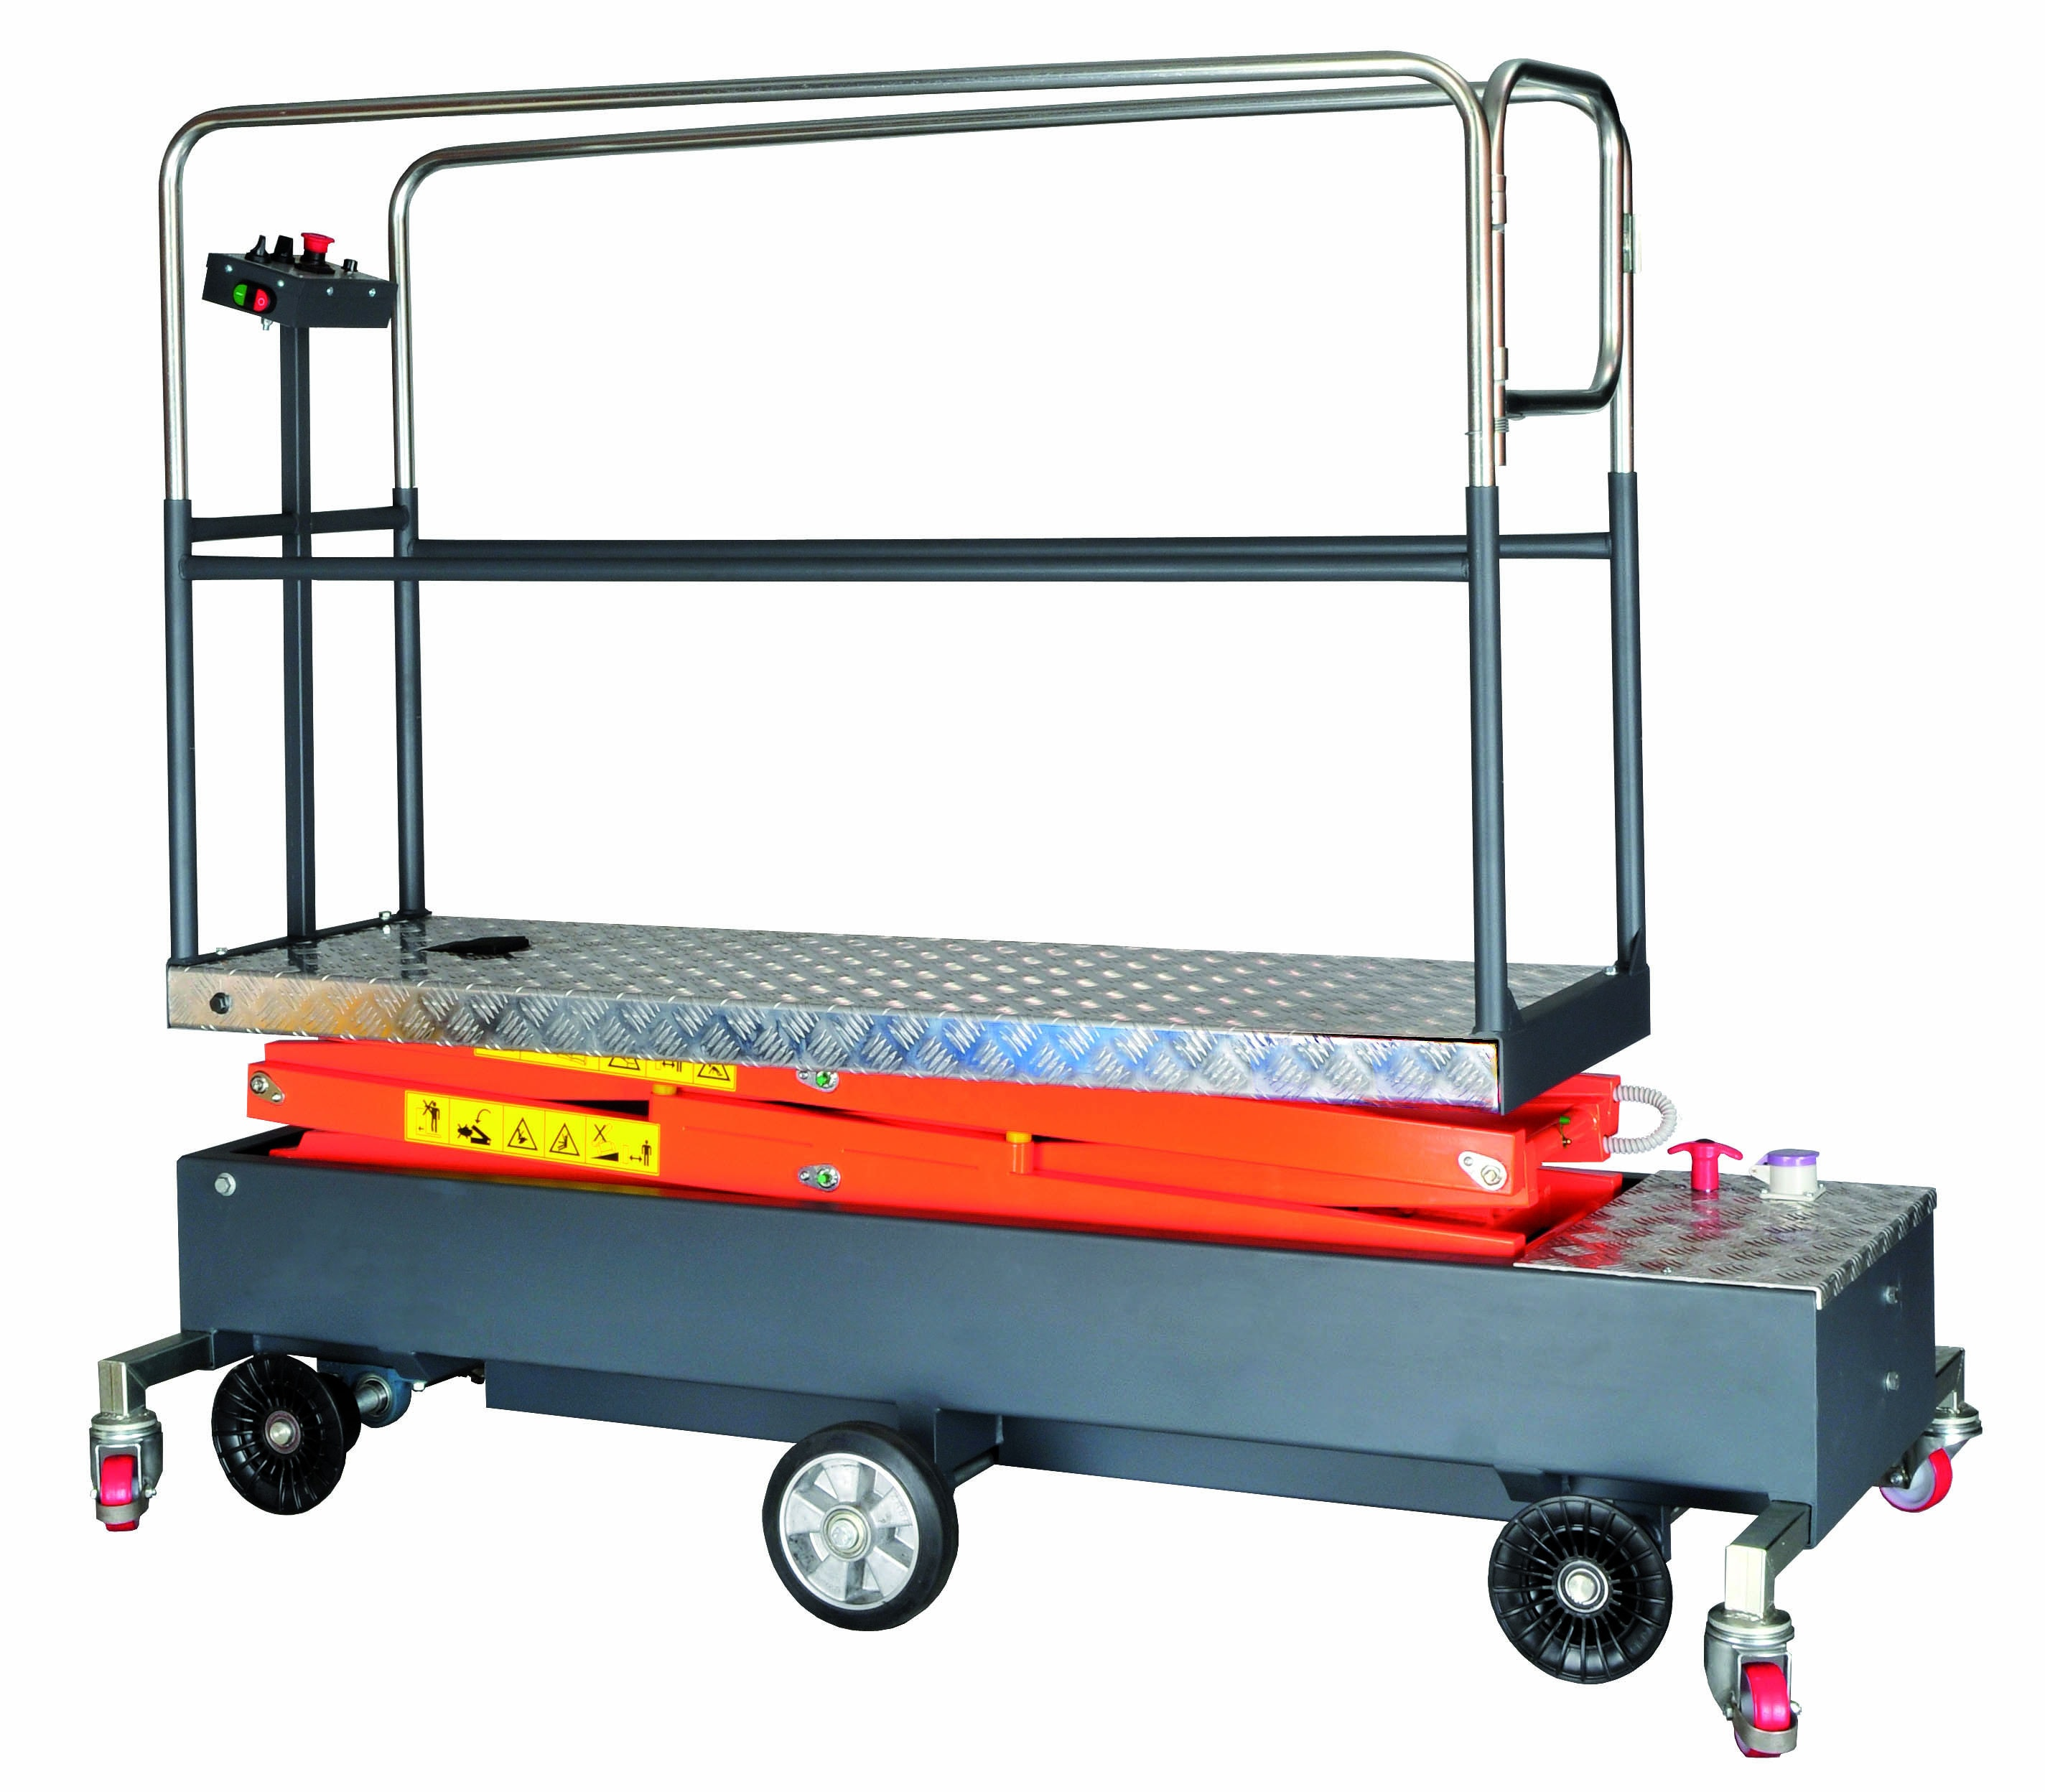 Greenhouse pipe rail trolley